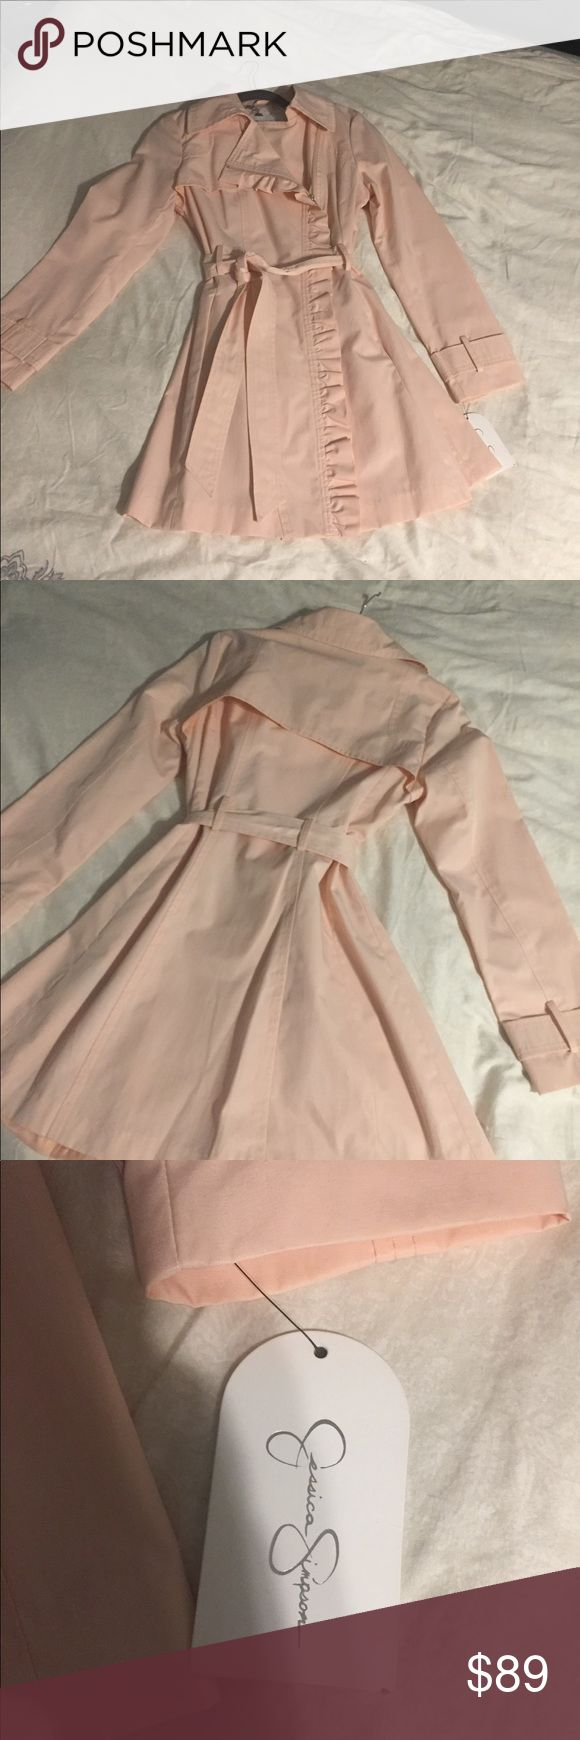 NWT pretty pink trench coat NWT Jessica Simpson pretty flirty pink trench coat/rain coat ! Adorable on! I accept reasonable offers. Jessica Simpson Jackets & Coats Trench Coats